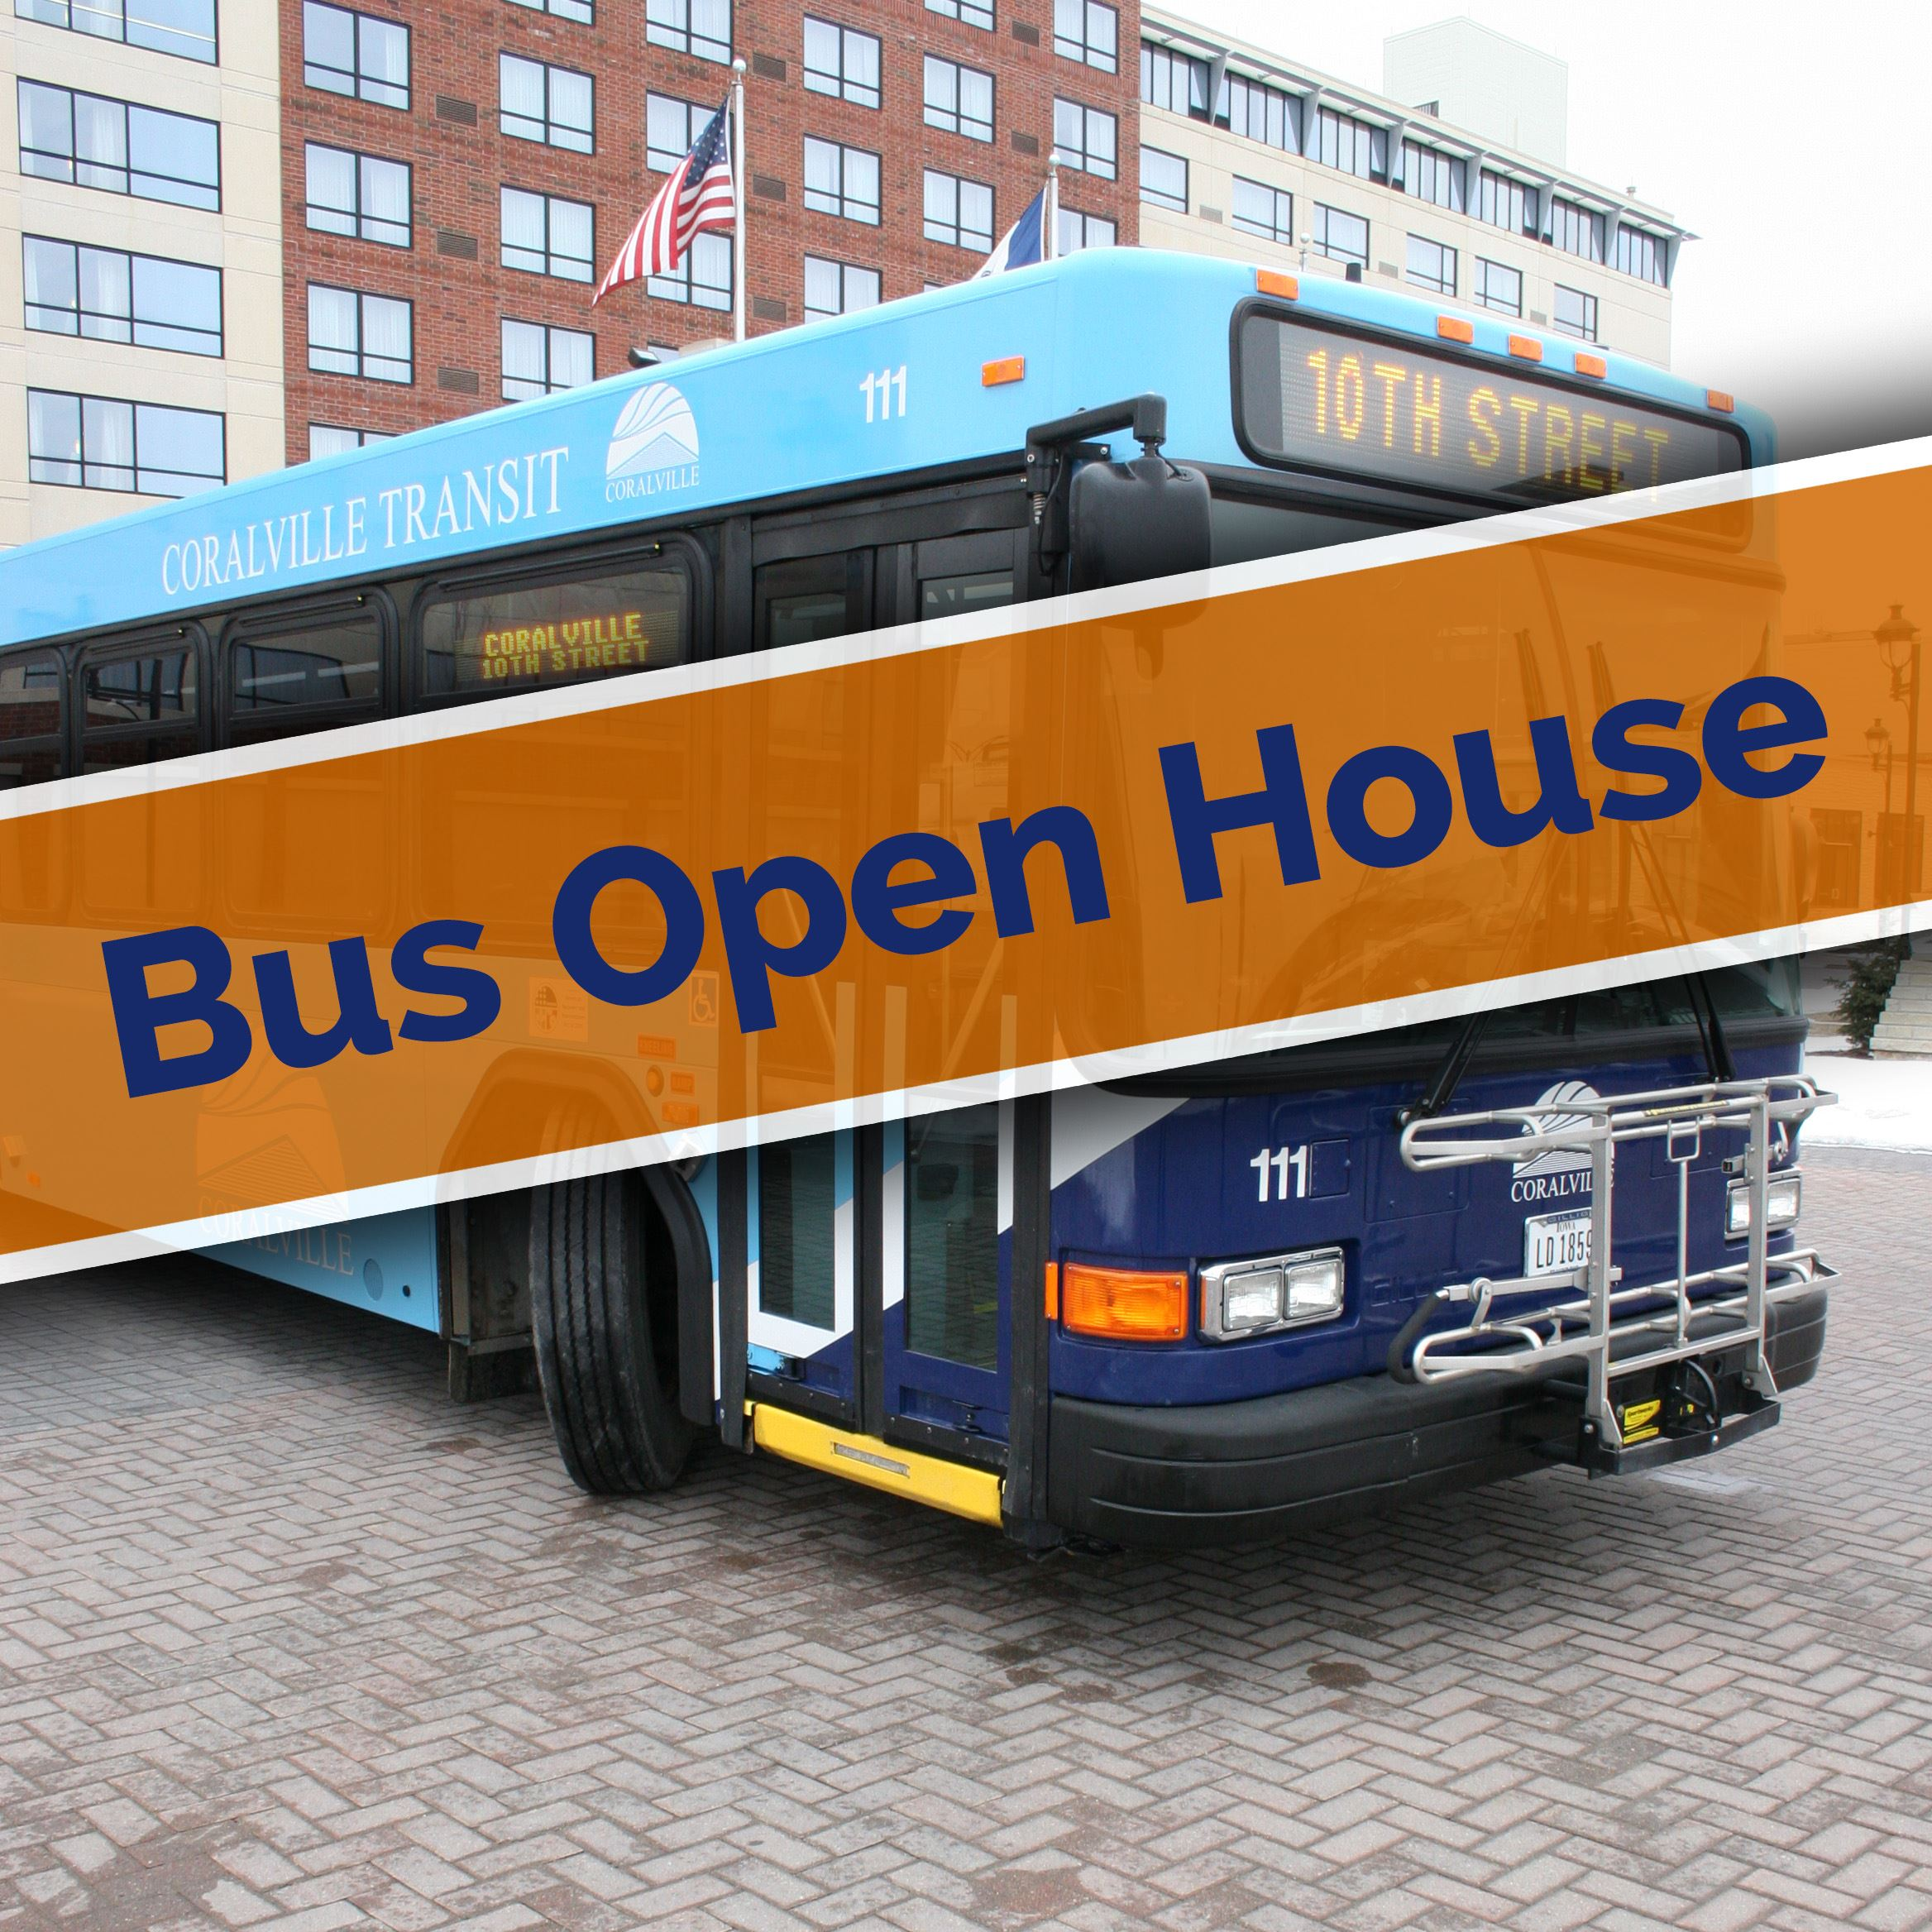 Bus Open House